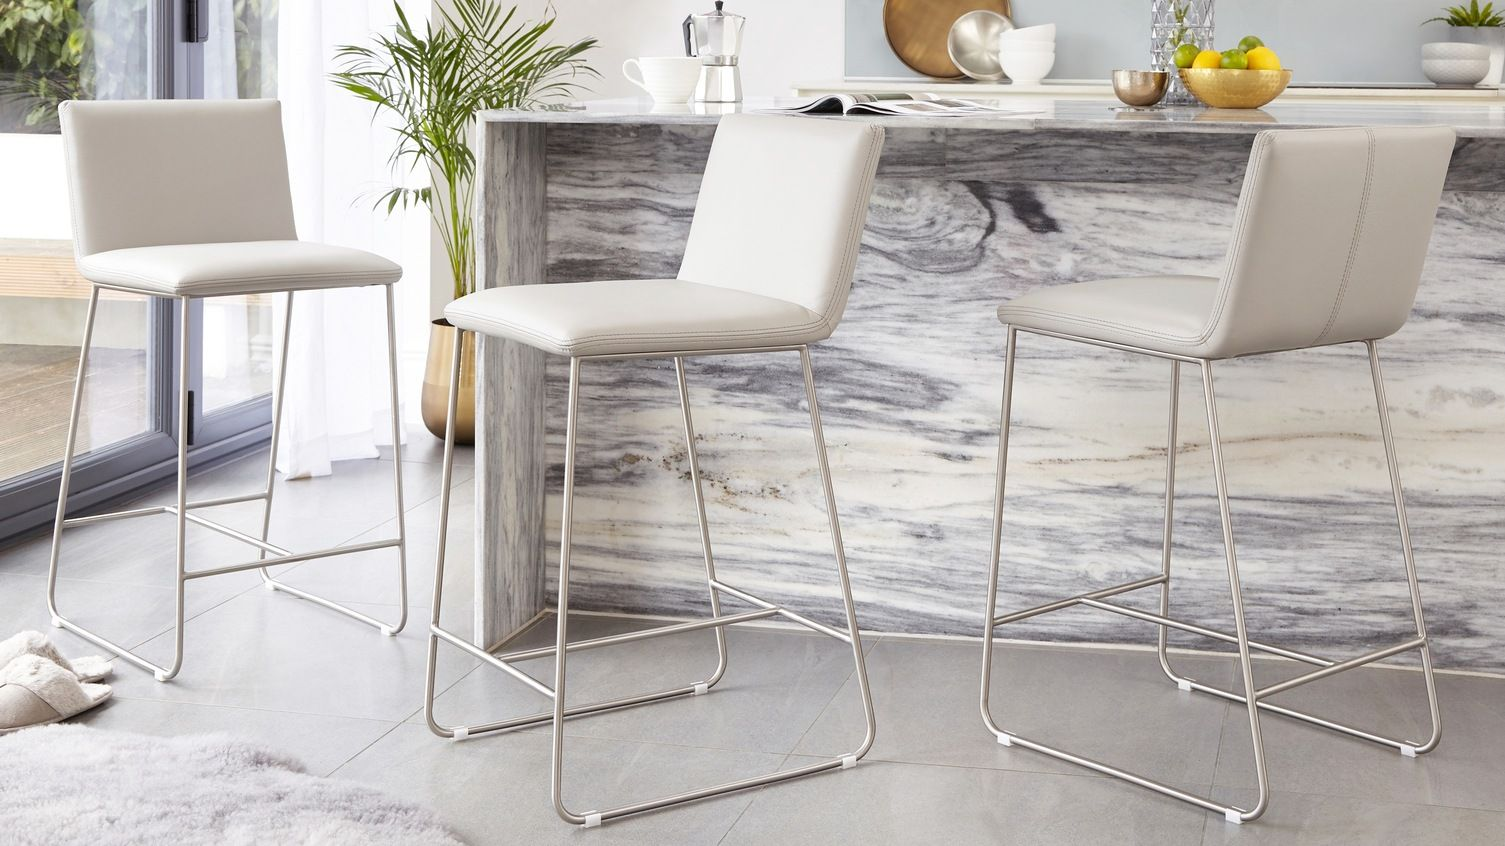 Tia Real Leather Bar Stool Bar Stools Designer Bar Stools